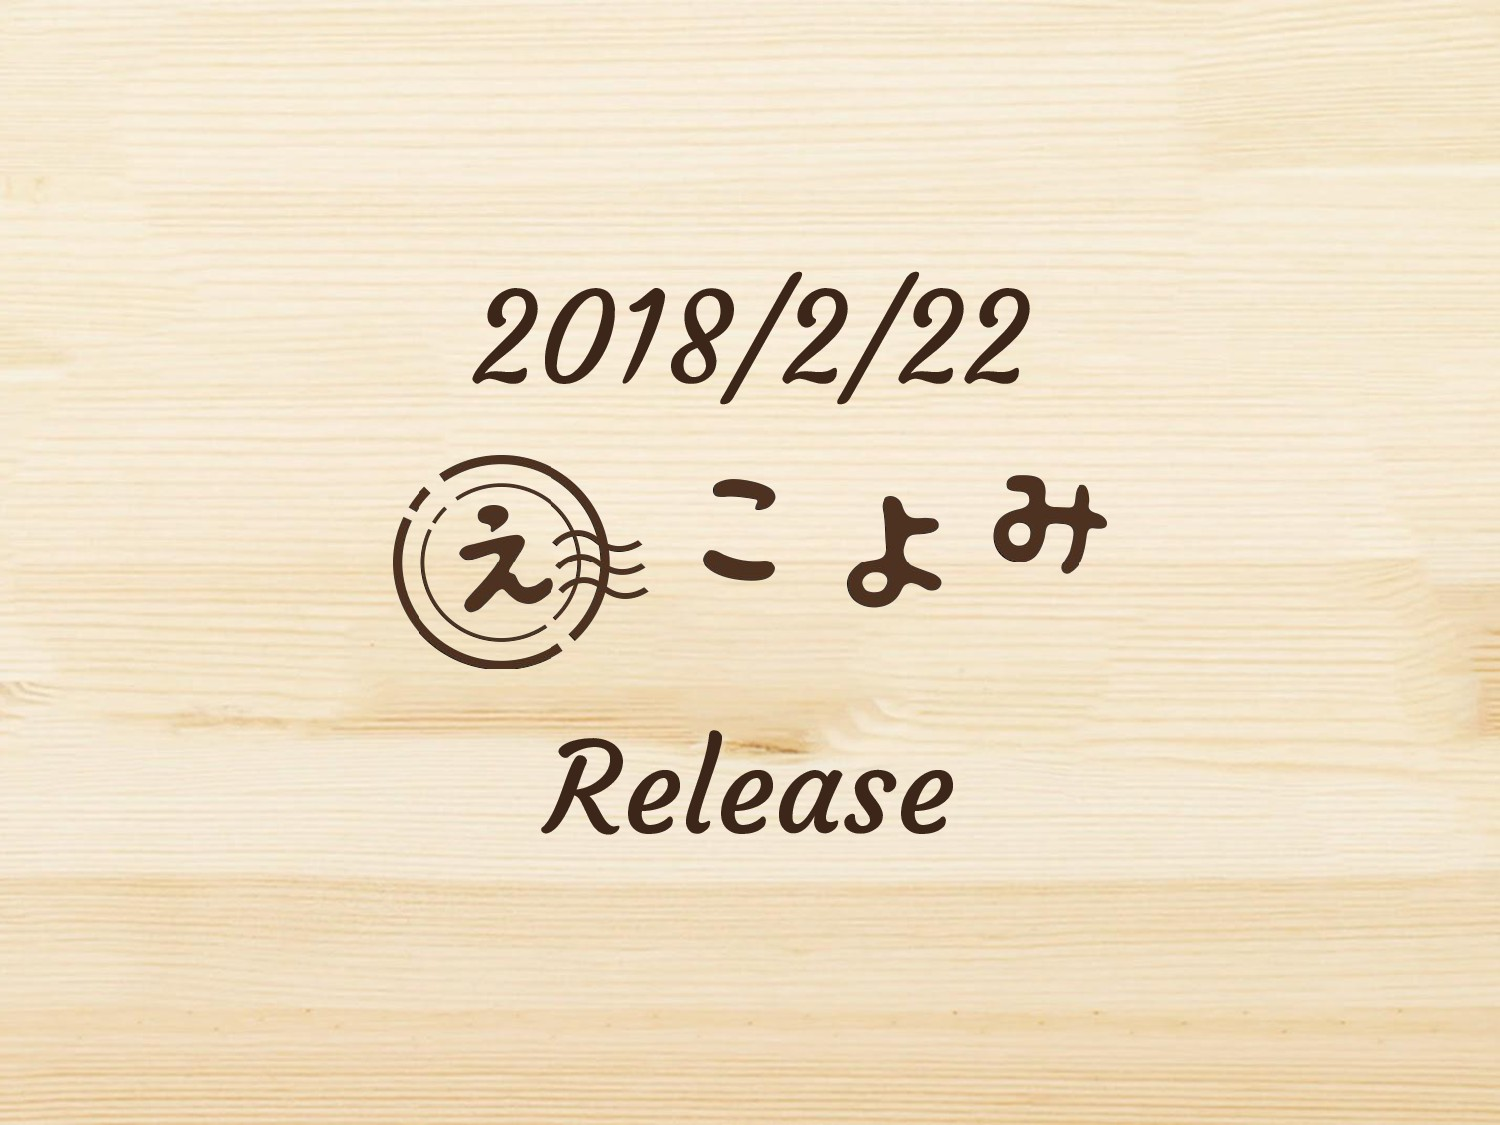 2018/2/22 Release